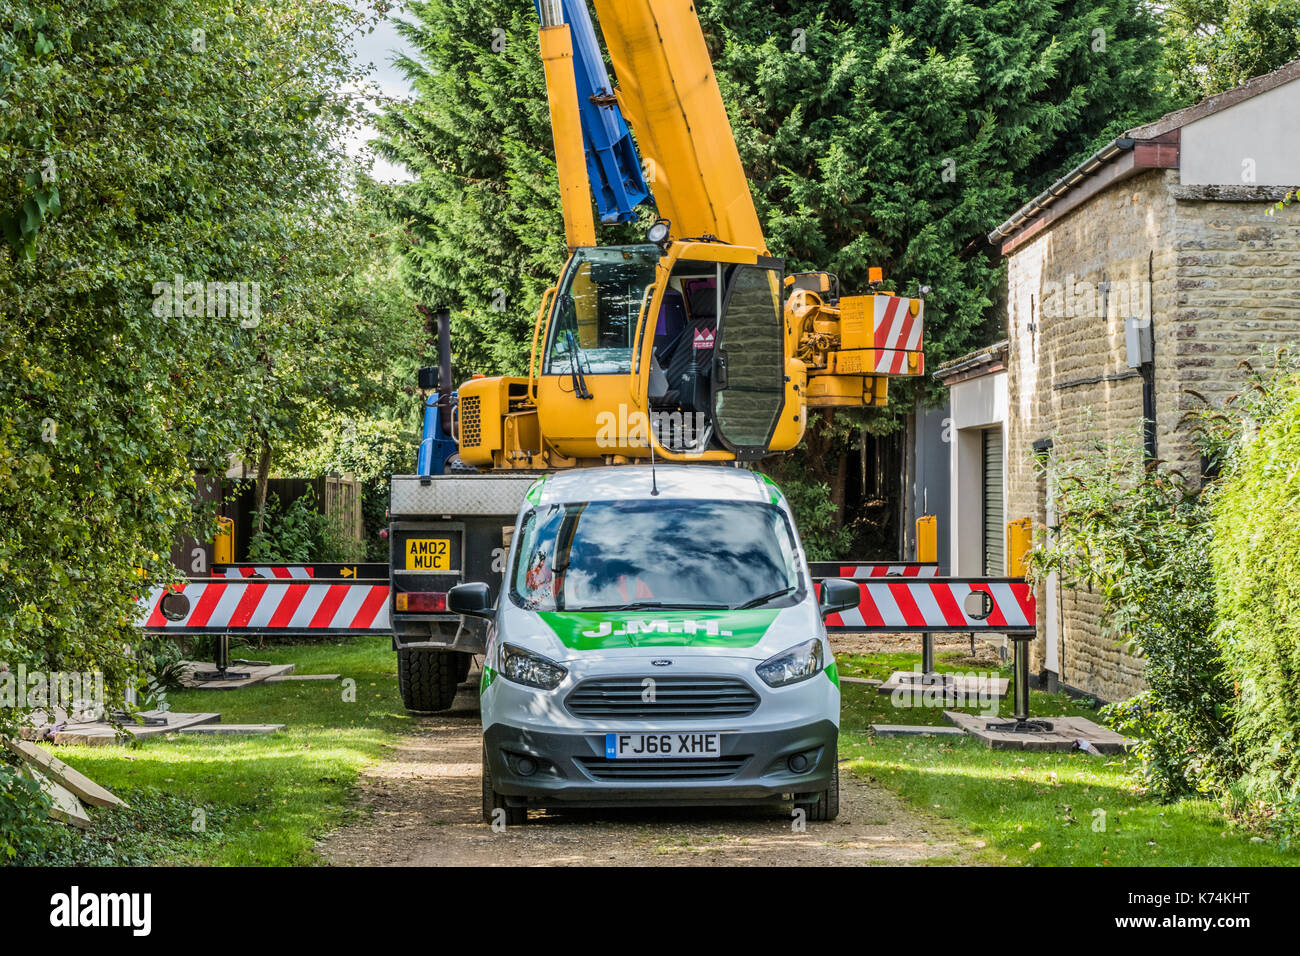 A large crane lorry and car parked in a back lane, on hire to lift heavy construction materials into a nearby garden. Lincolnshire, England, UK. - Stock Image